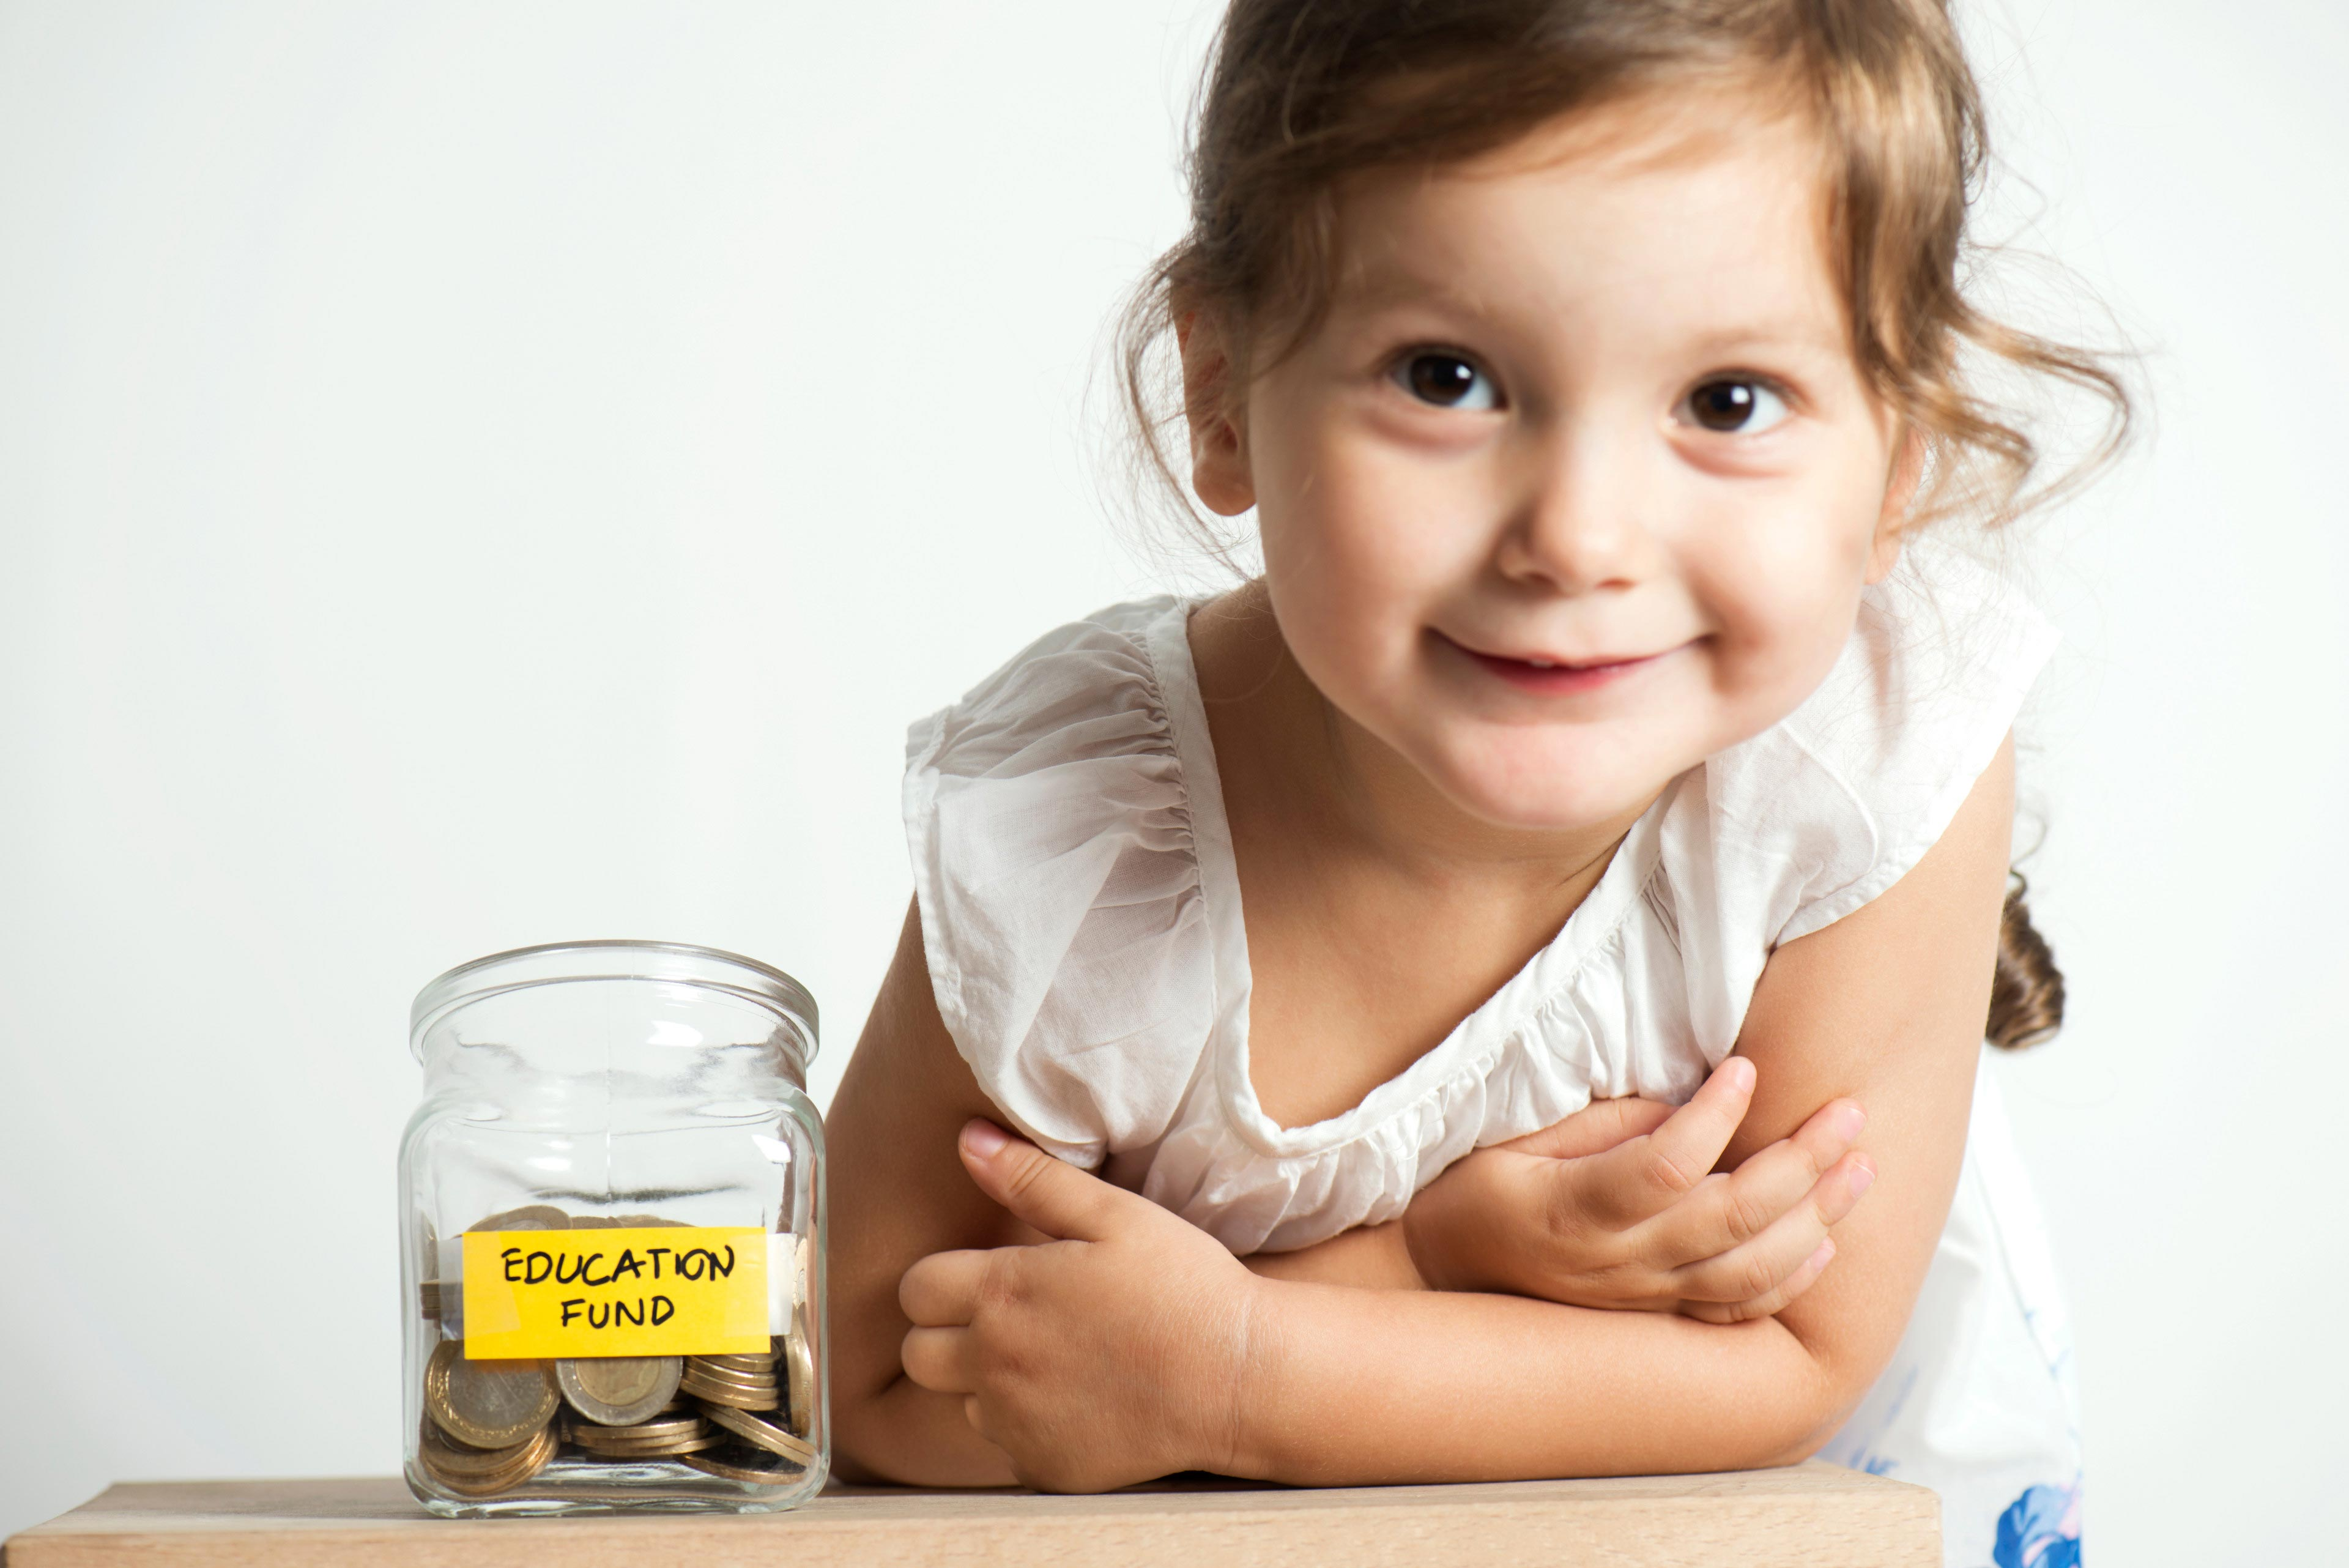 Little girl with coins in glass money jar with education fund label